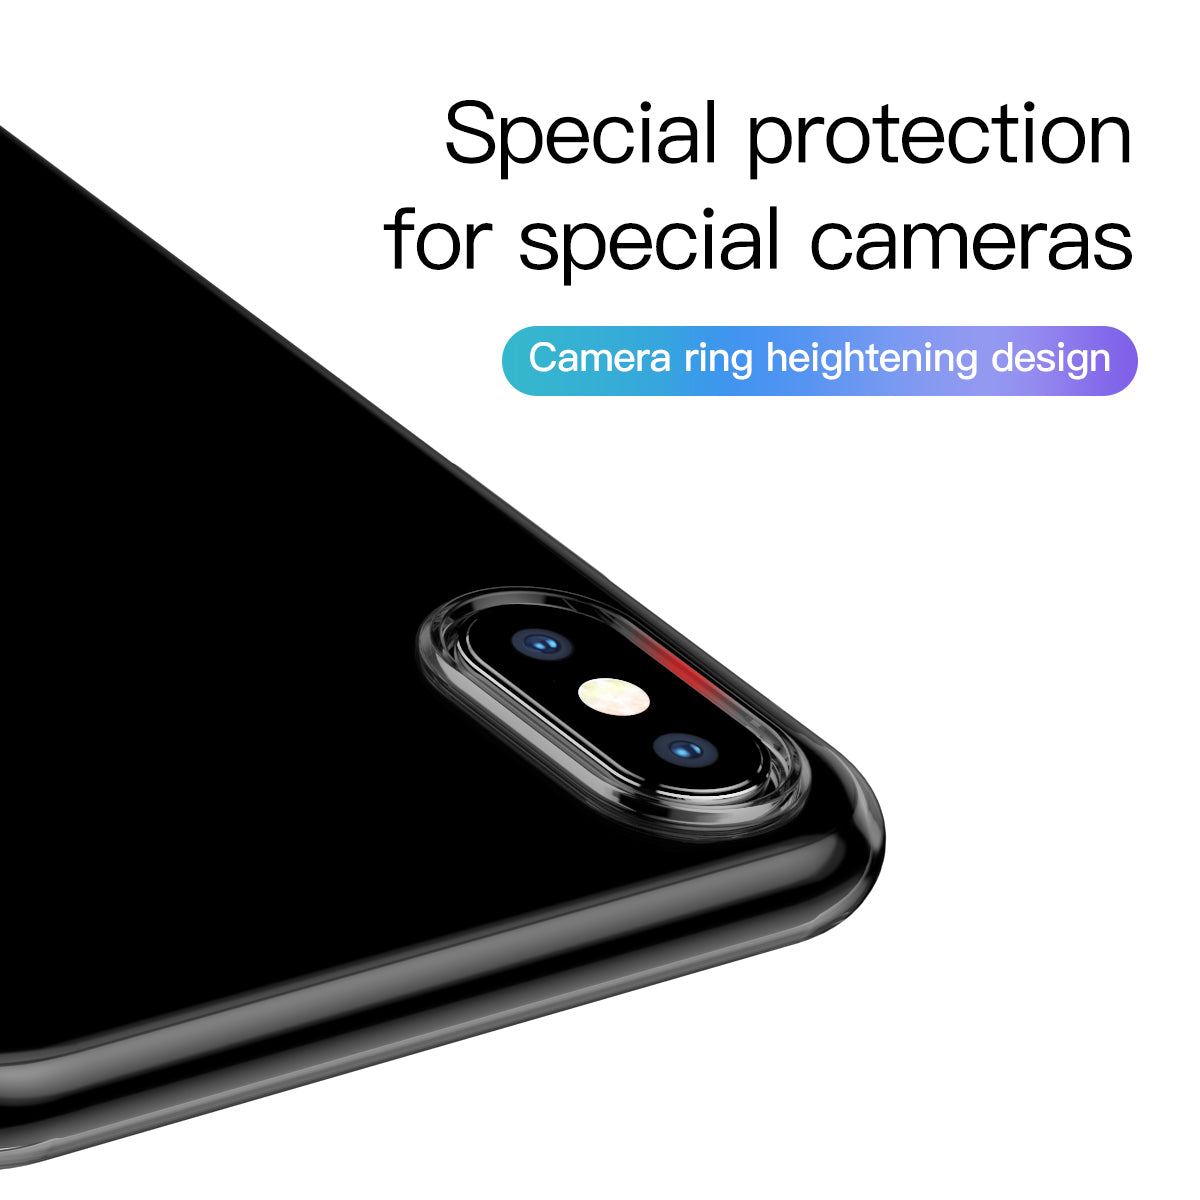 iPhone-XS-Baseus-Simple-Series-Transparent-Black-Camera-Protection_S07VY8C1D5FK.jpg